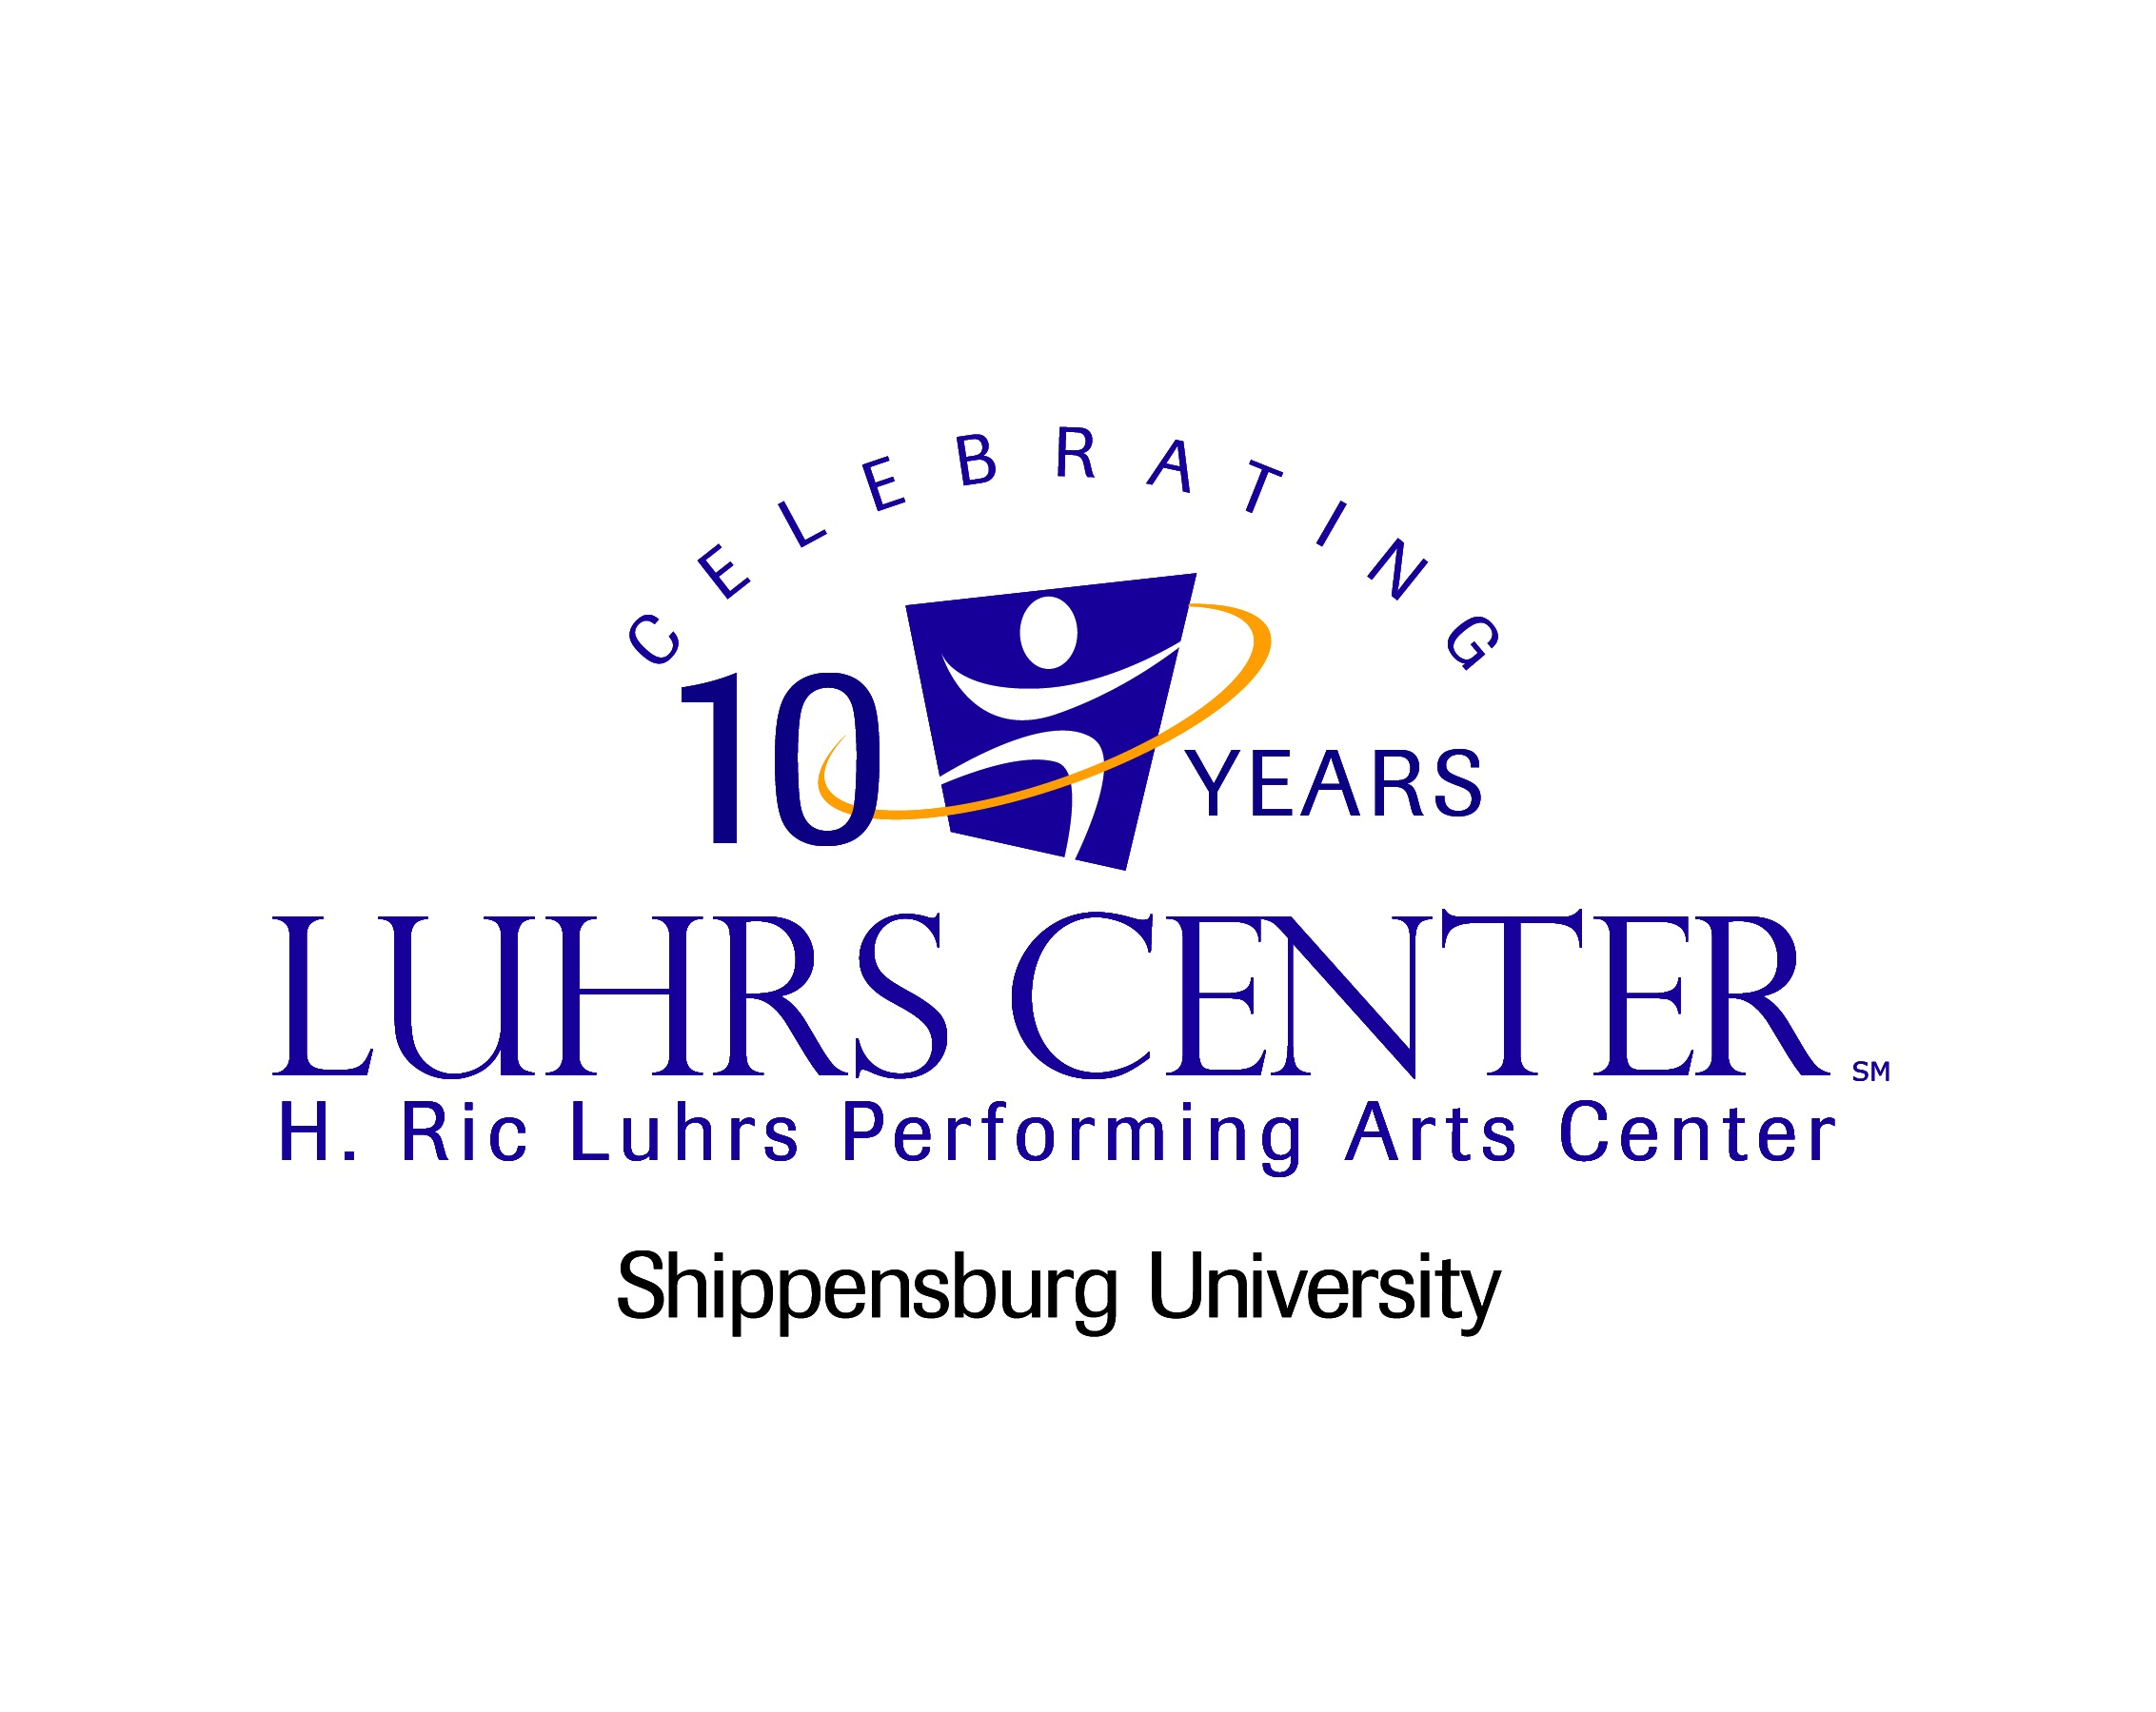 the h ric luhrs center logo